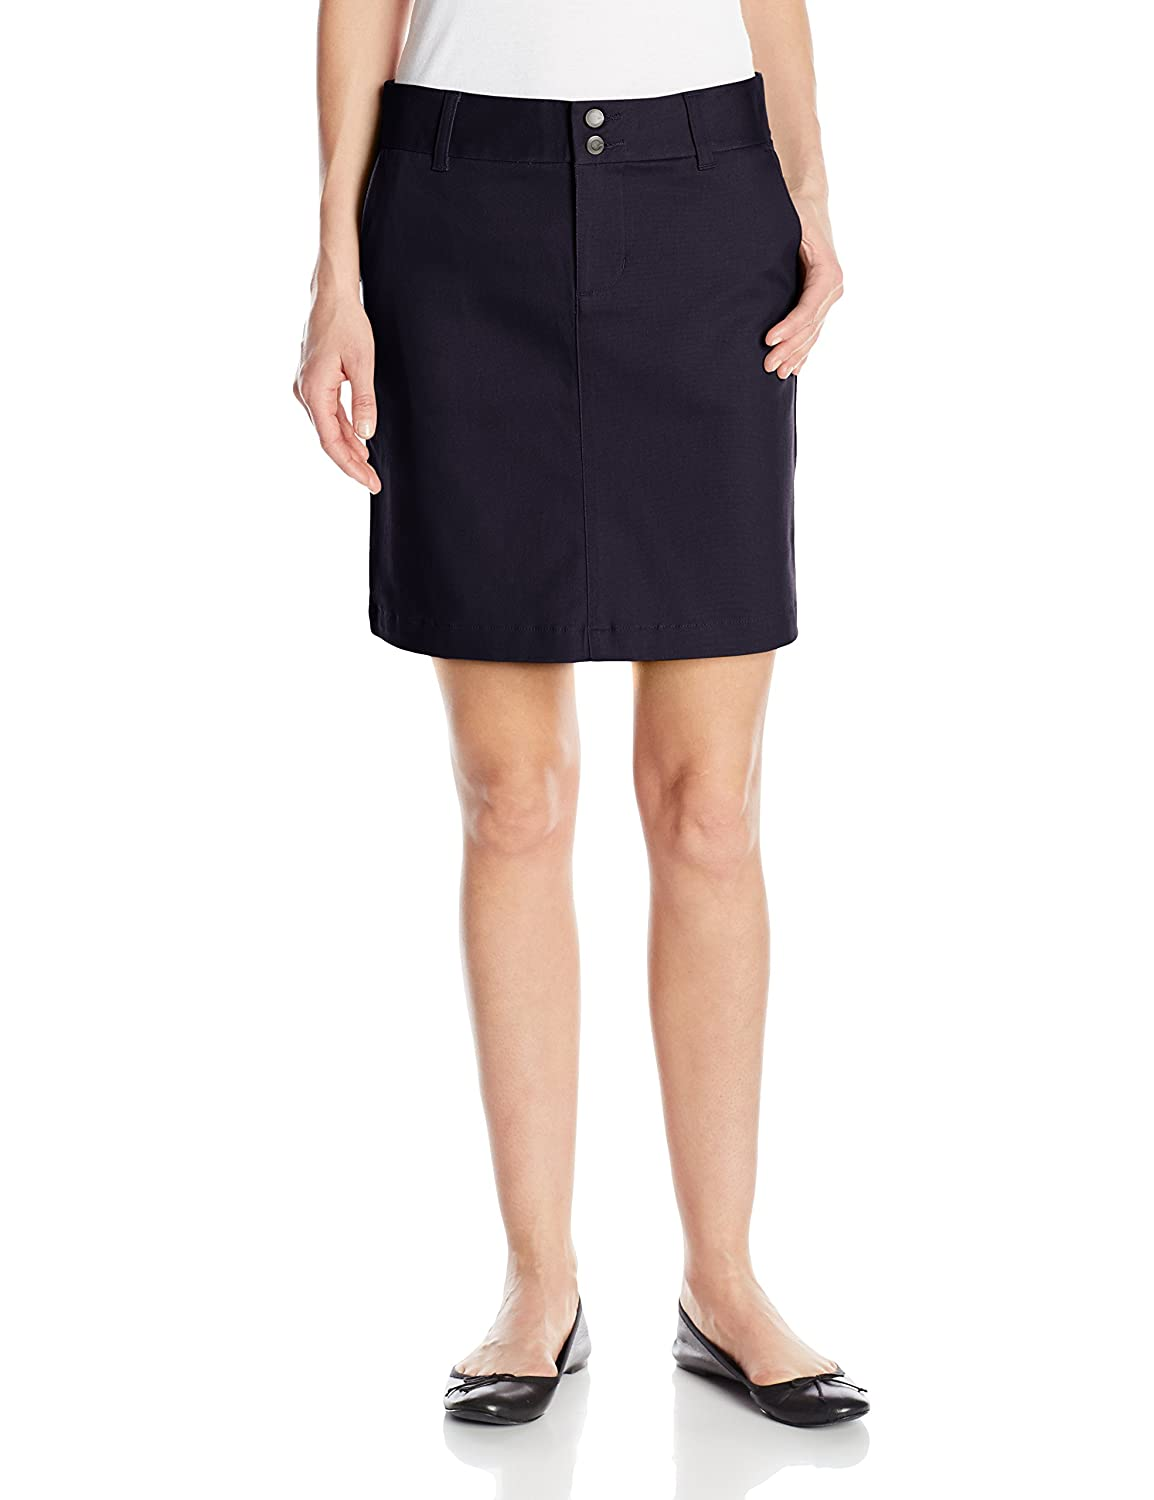 Lee Uniforms Juniors Classic Skirt Lee Uniform - Juniors V9215JL